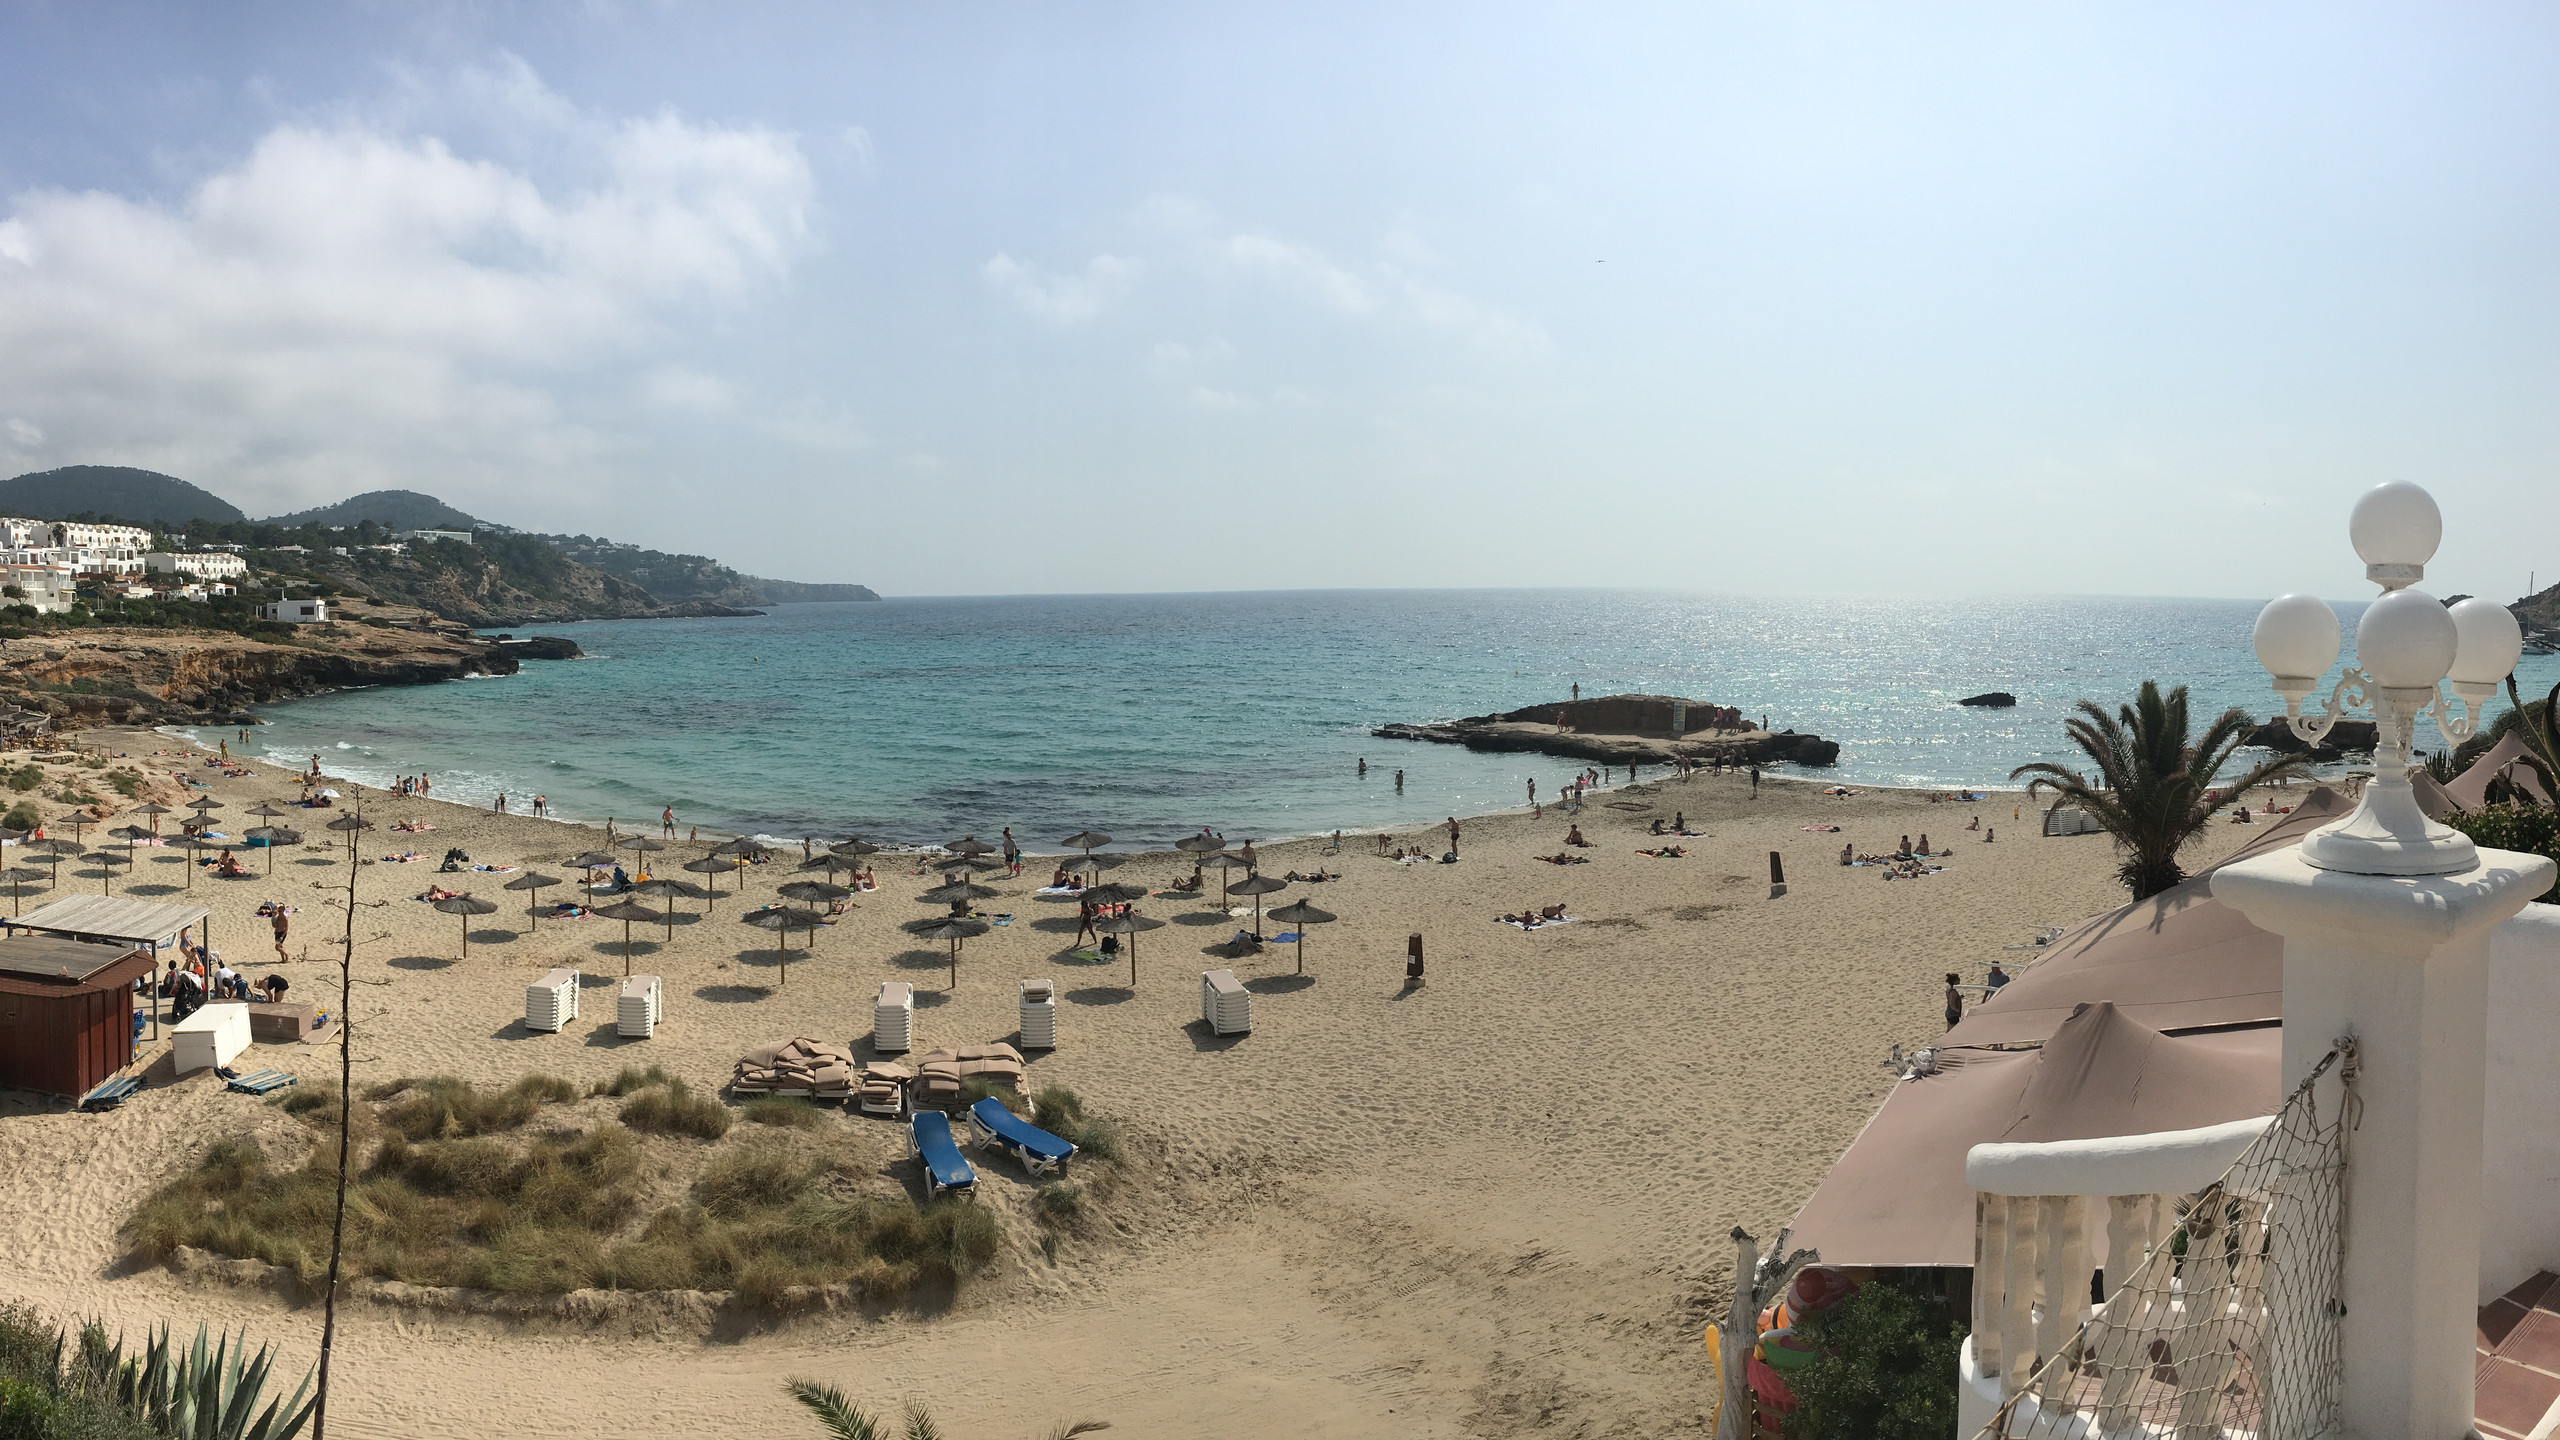 View from the stage in Ibiza